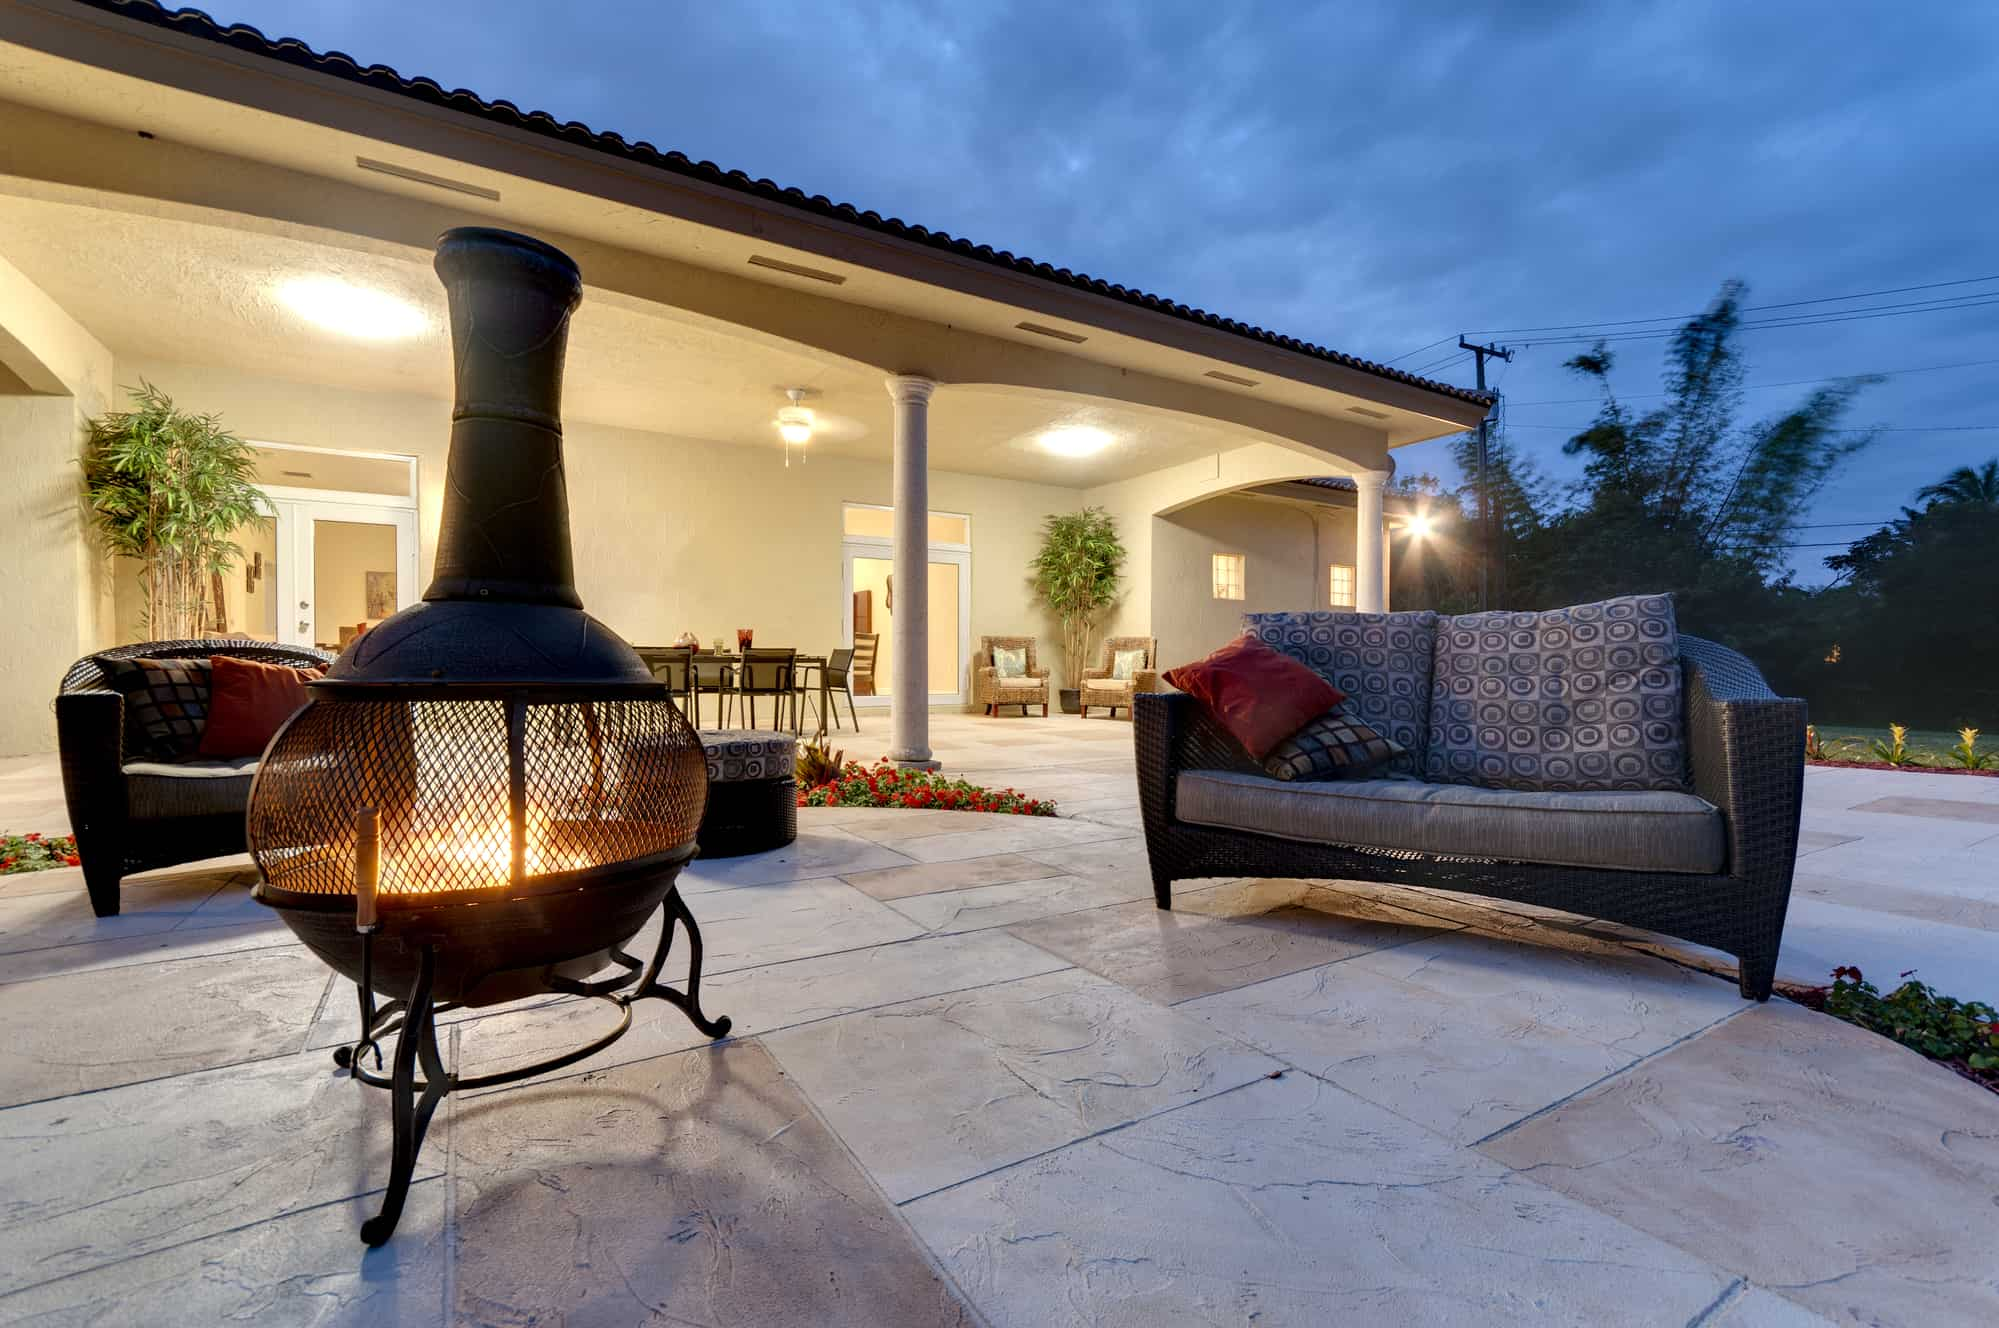 Chiminea in backyard space